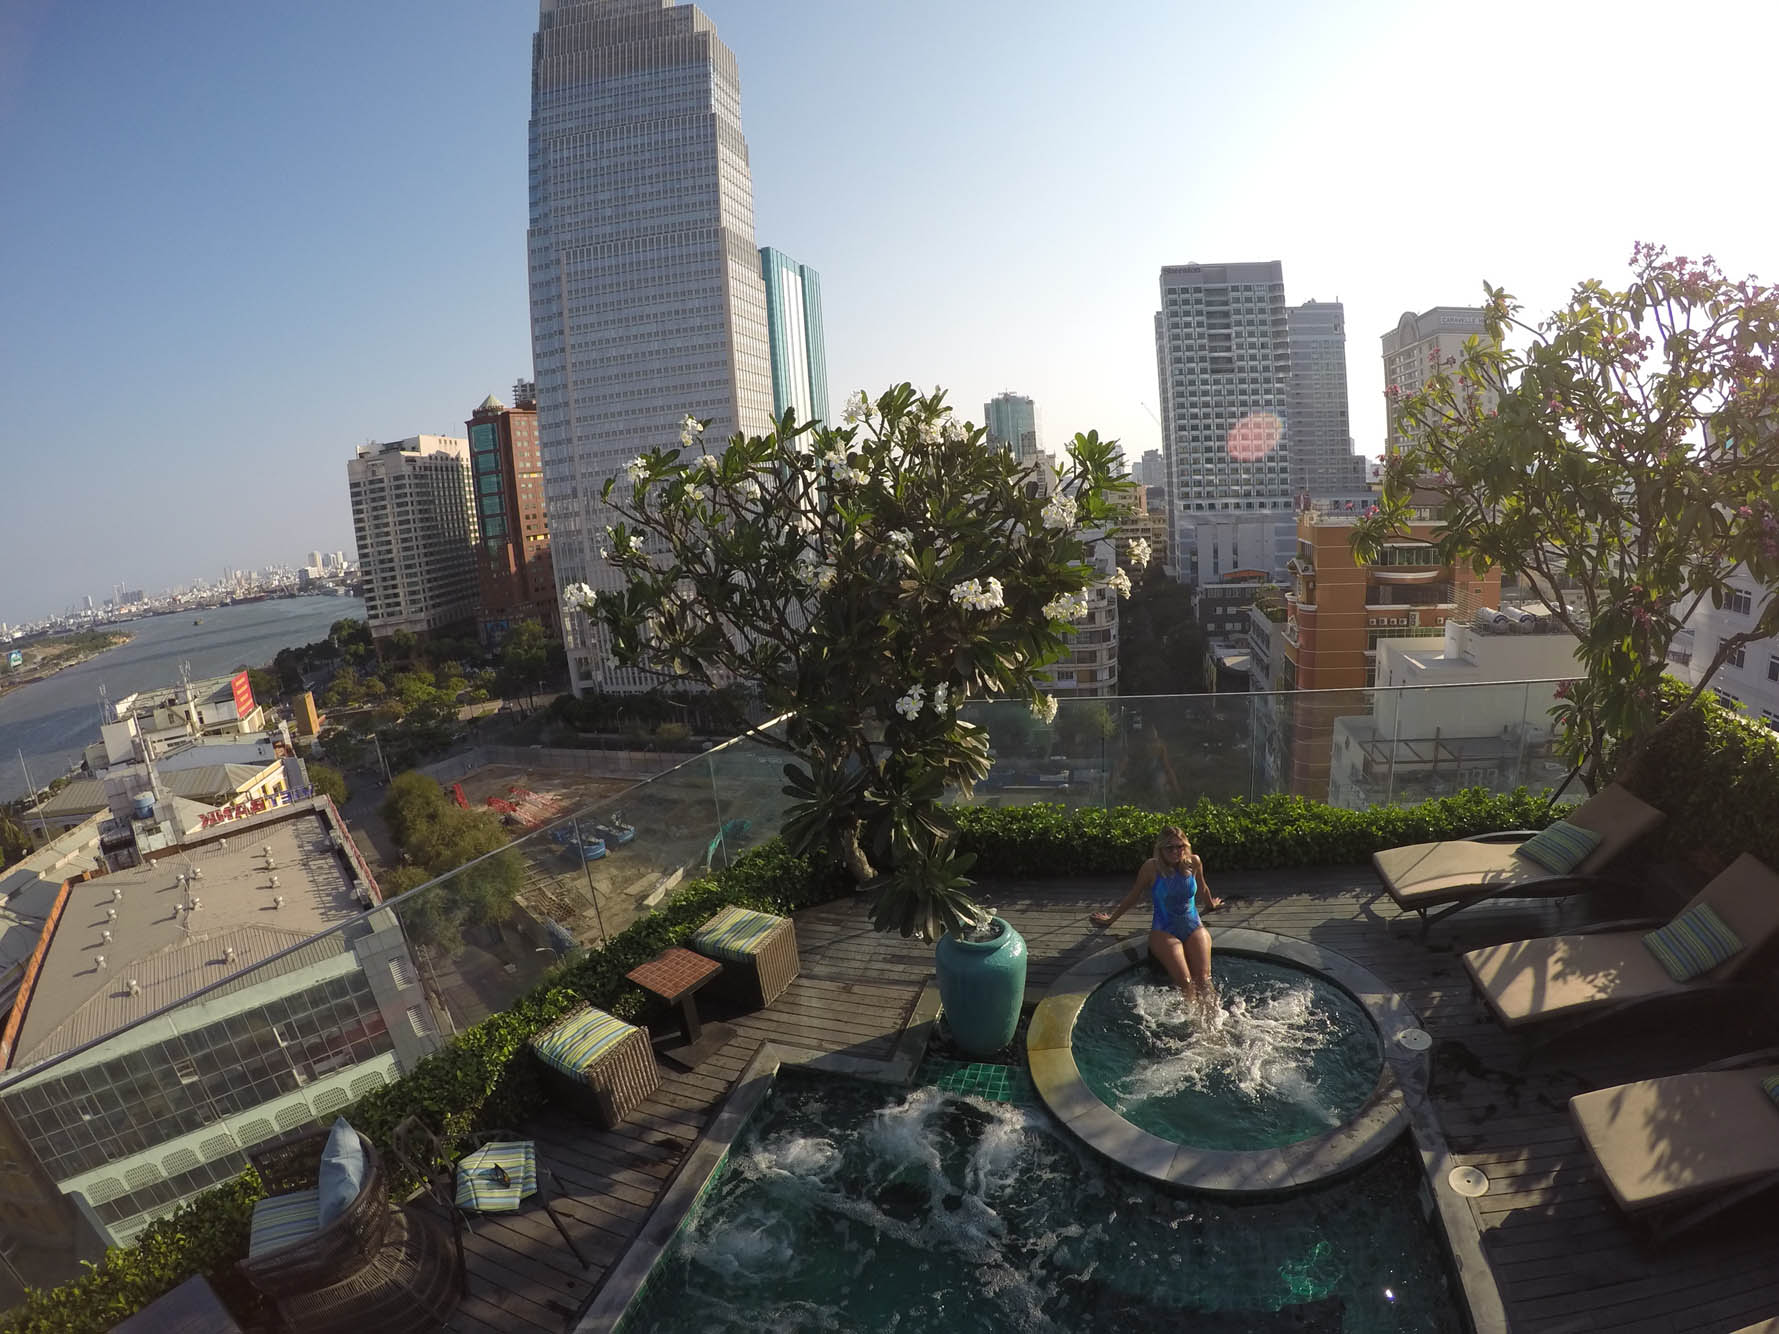 Piscina no rooftop do Silverland Jolie Hotel & Spa, no Distrito 1 de Ho Chi Minh City (Saigon)